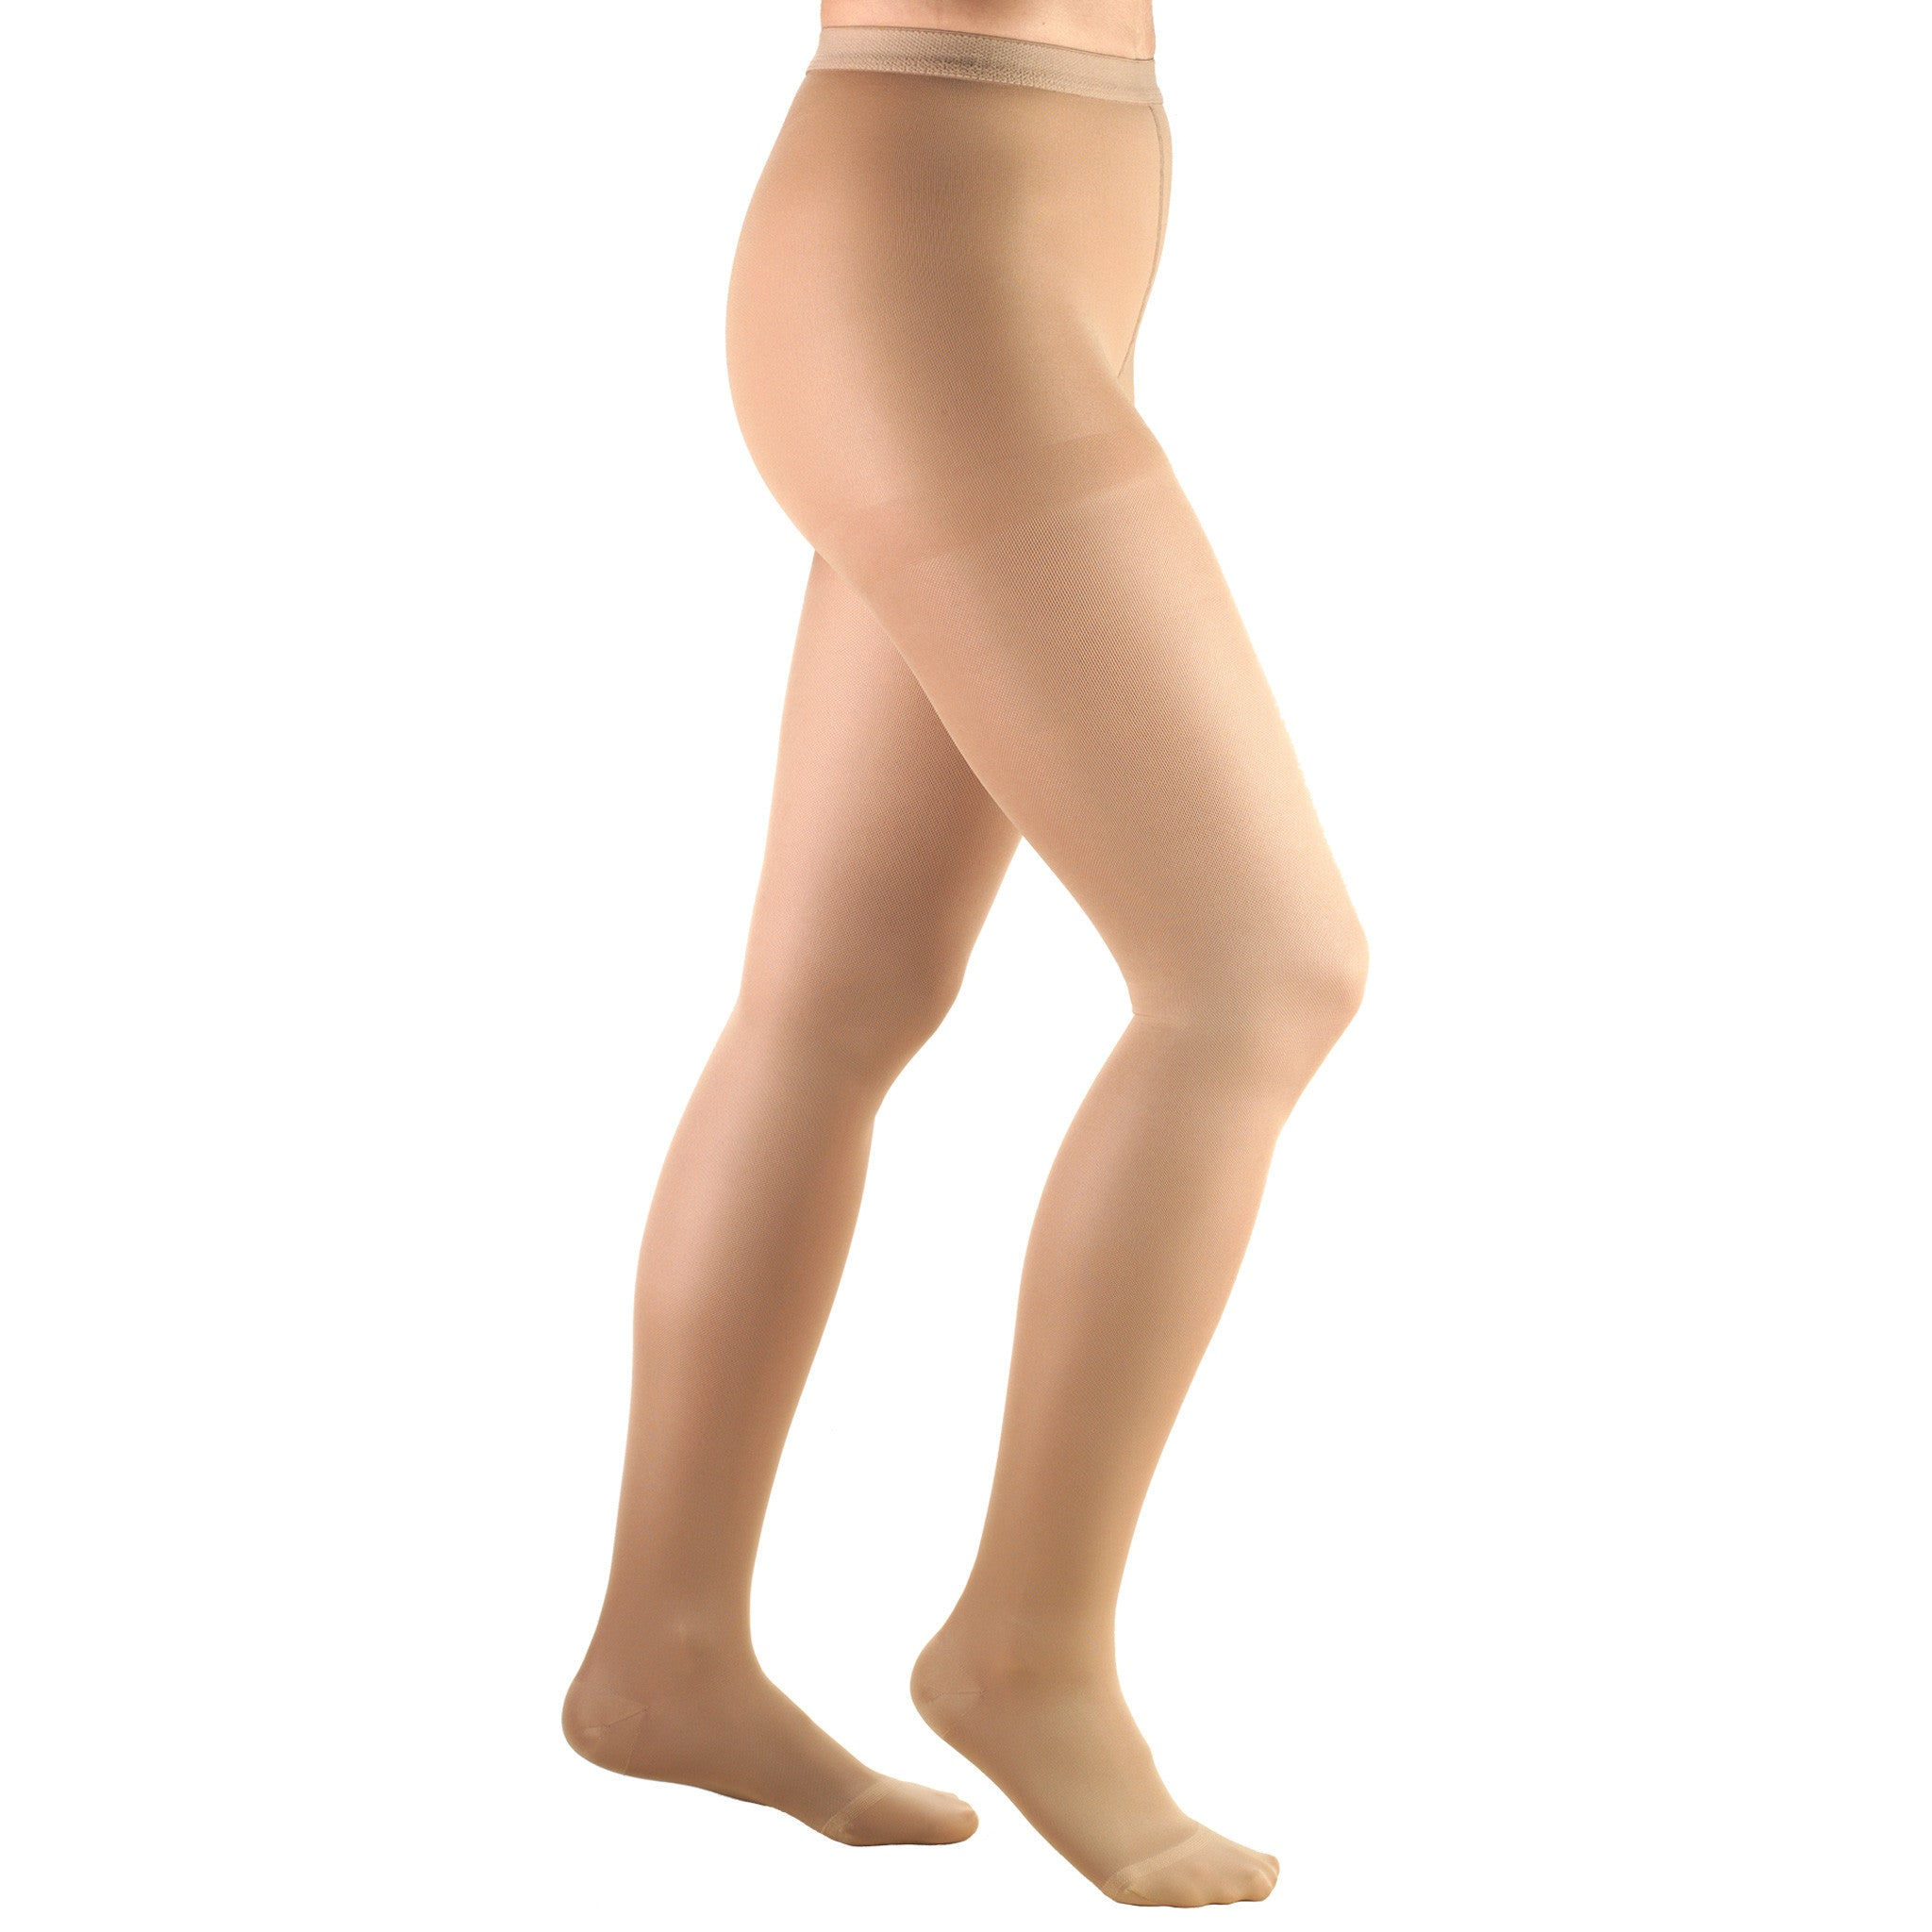 0365 Ladies' Beige Opaque Pantyhose